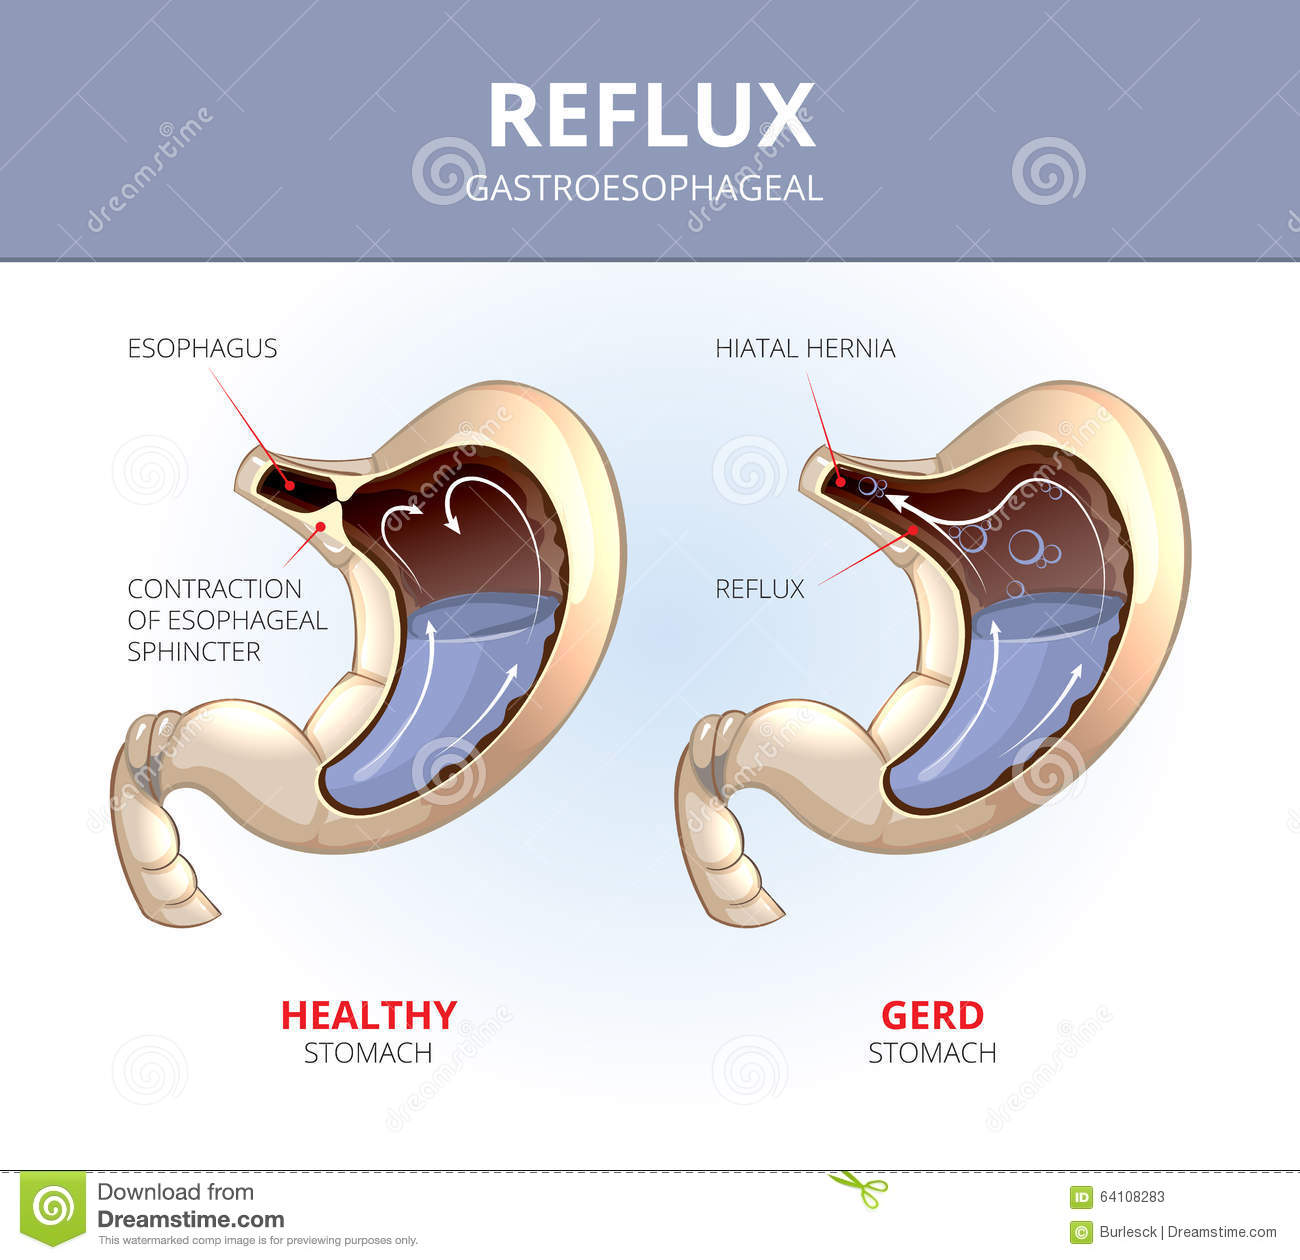 gastro esophageal reflux disease Gerd stands for gastro-esophageal reflux disease or acid reflux and is a common condition when the acid produced in the stomach leaks out and seeps back into the esophagus or food pipe the.